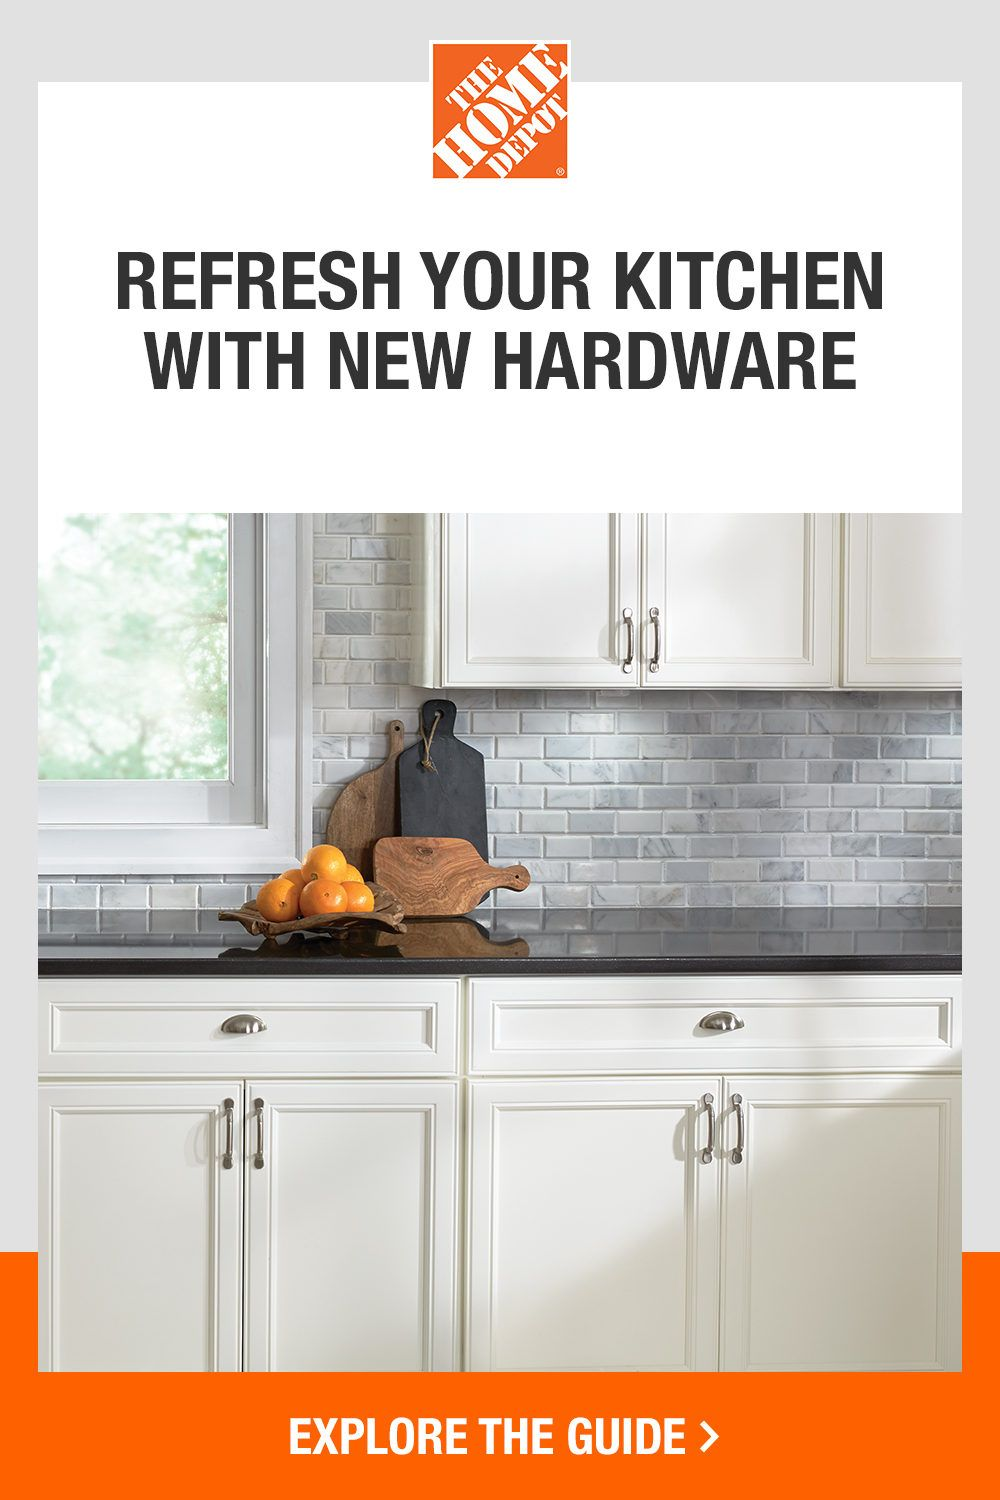 Give your kitchen cabinets a refresh with help from The Home Depot. Our DIY guide will show you step-by-step installation instructions, so you can easily transform your spaces with new hardware. Click to start your project with The Home Depot.